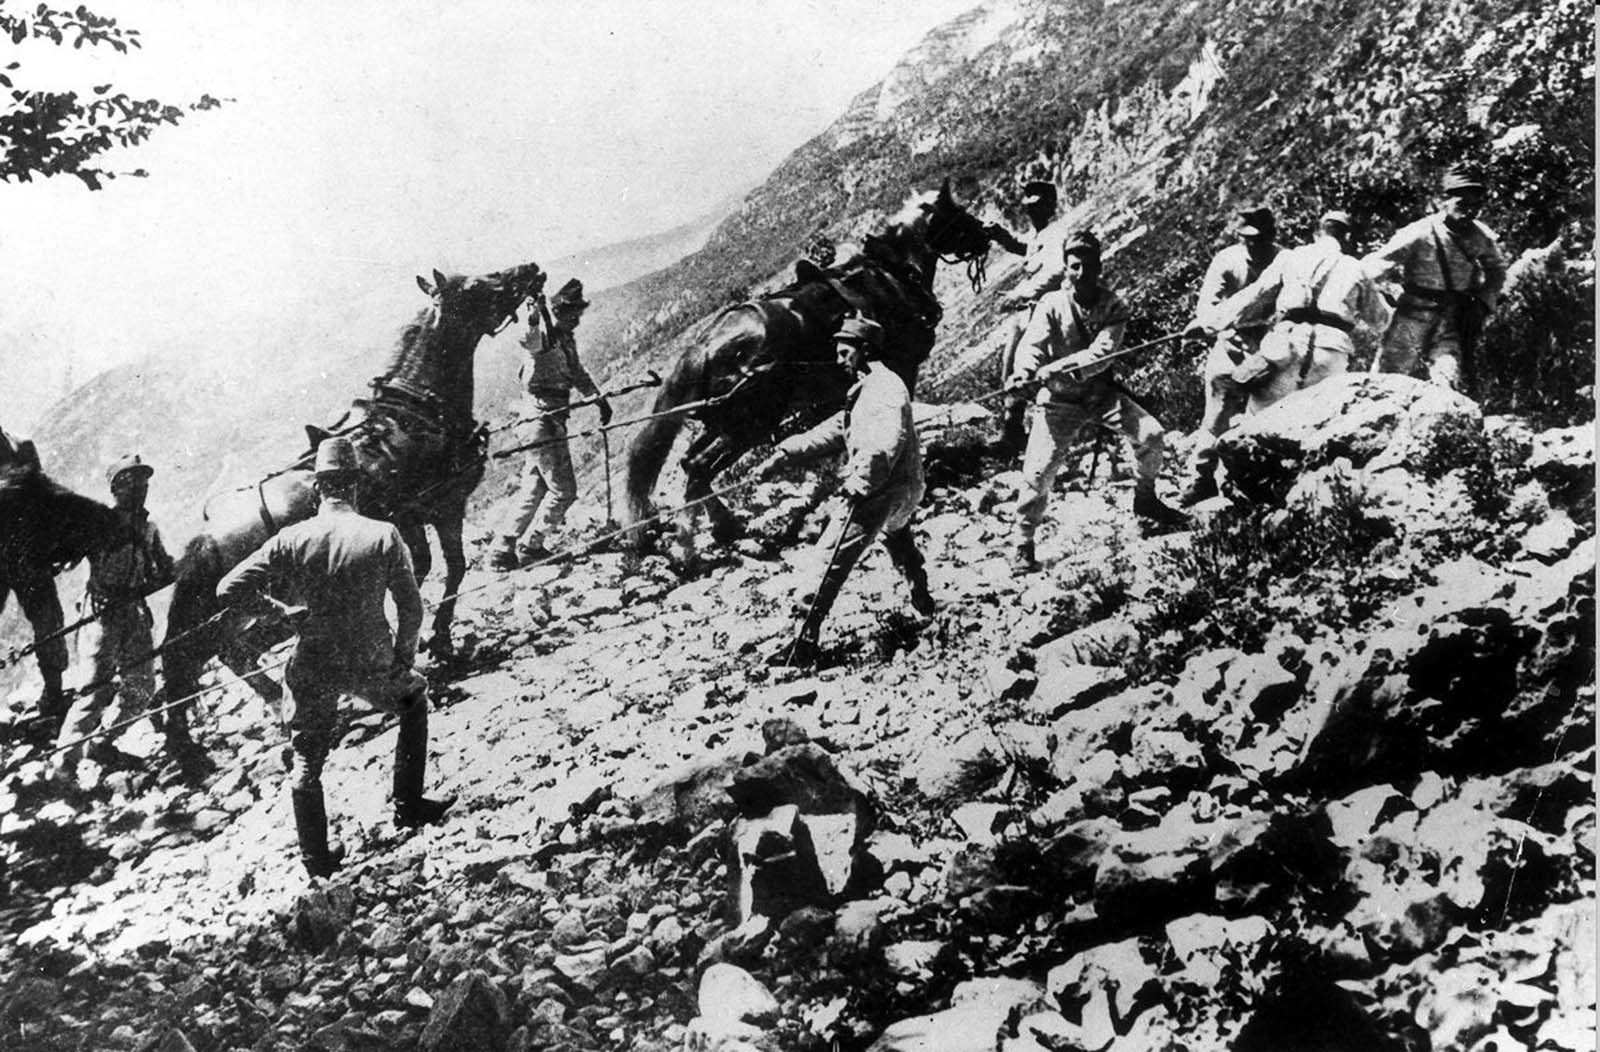 Austrian mountain infantry haul ordnance up a slope. 1916.